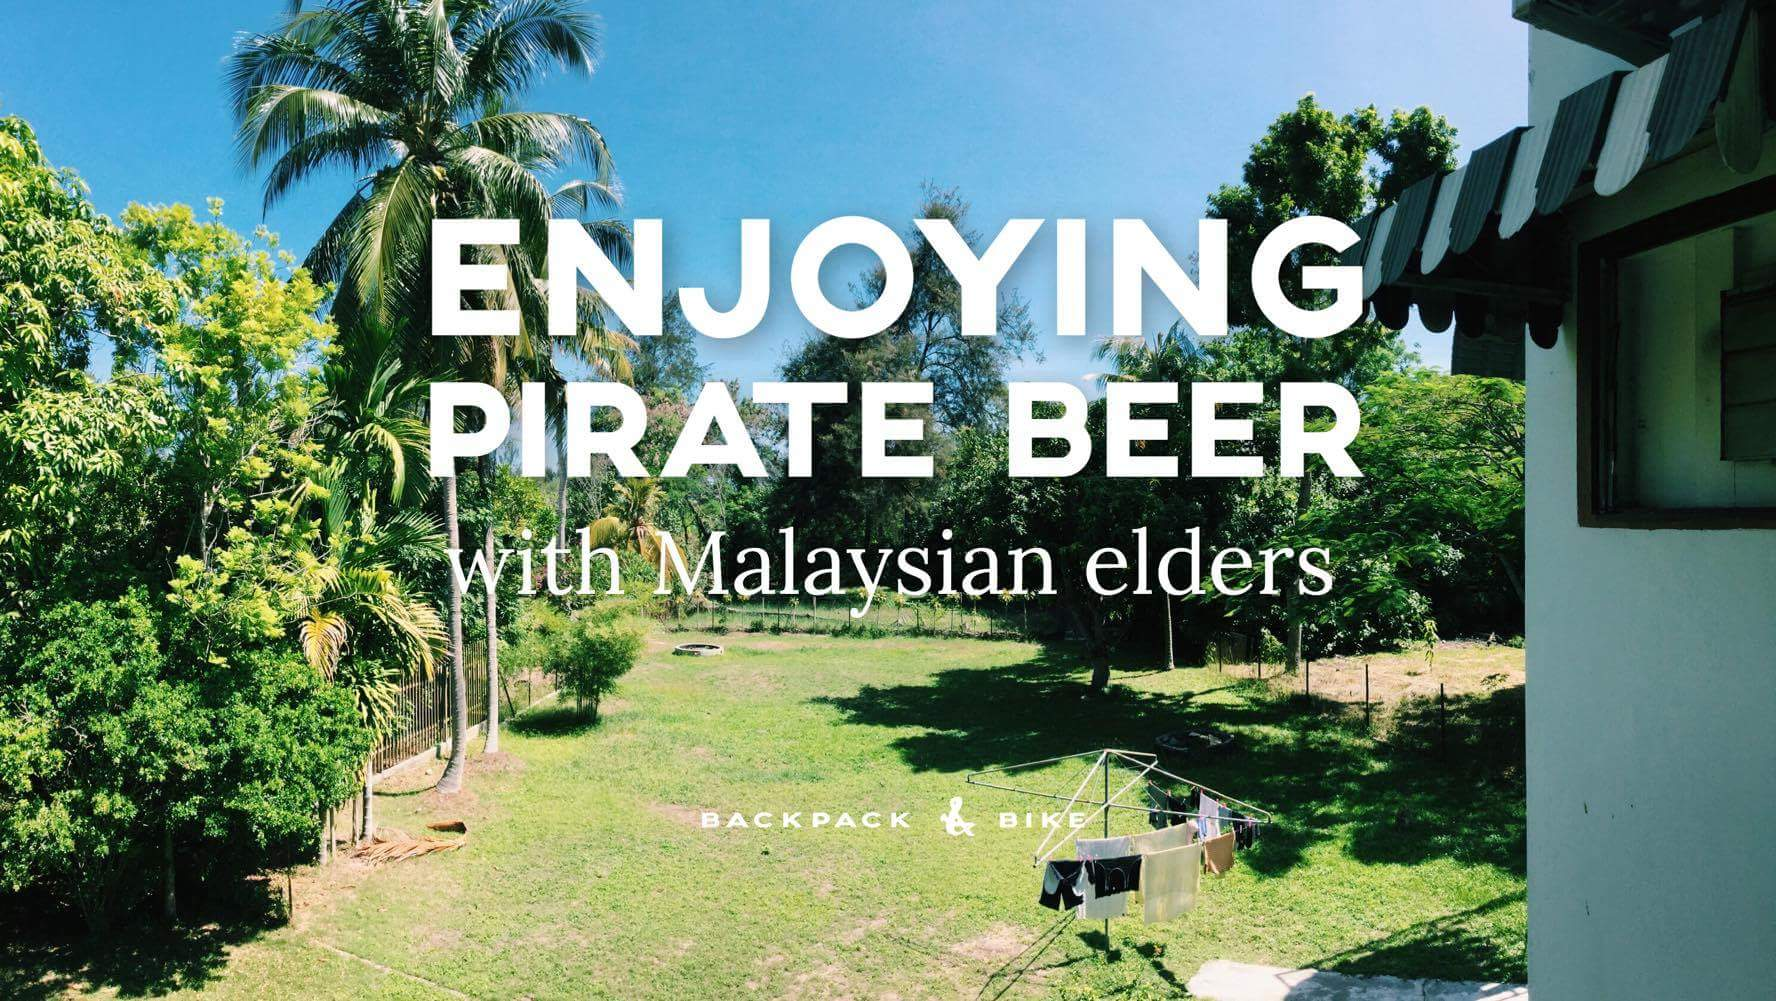 Enjoying Pirate Beer with Malaysian elders